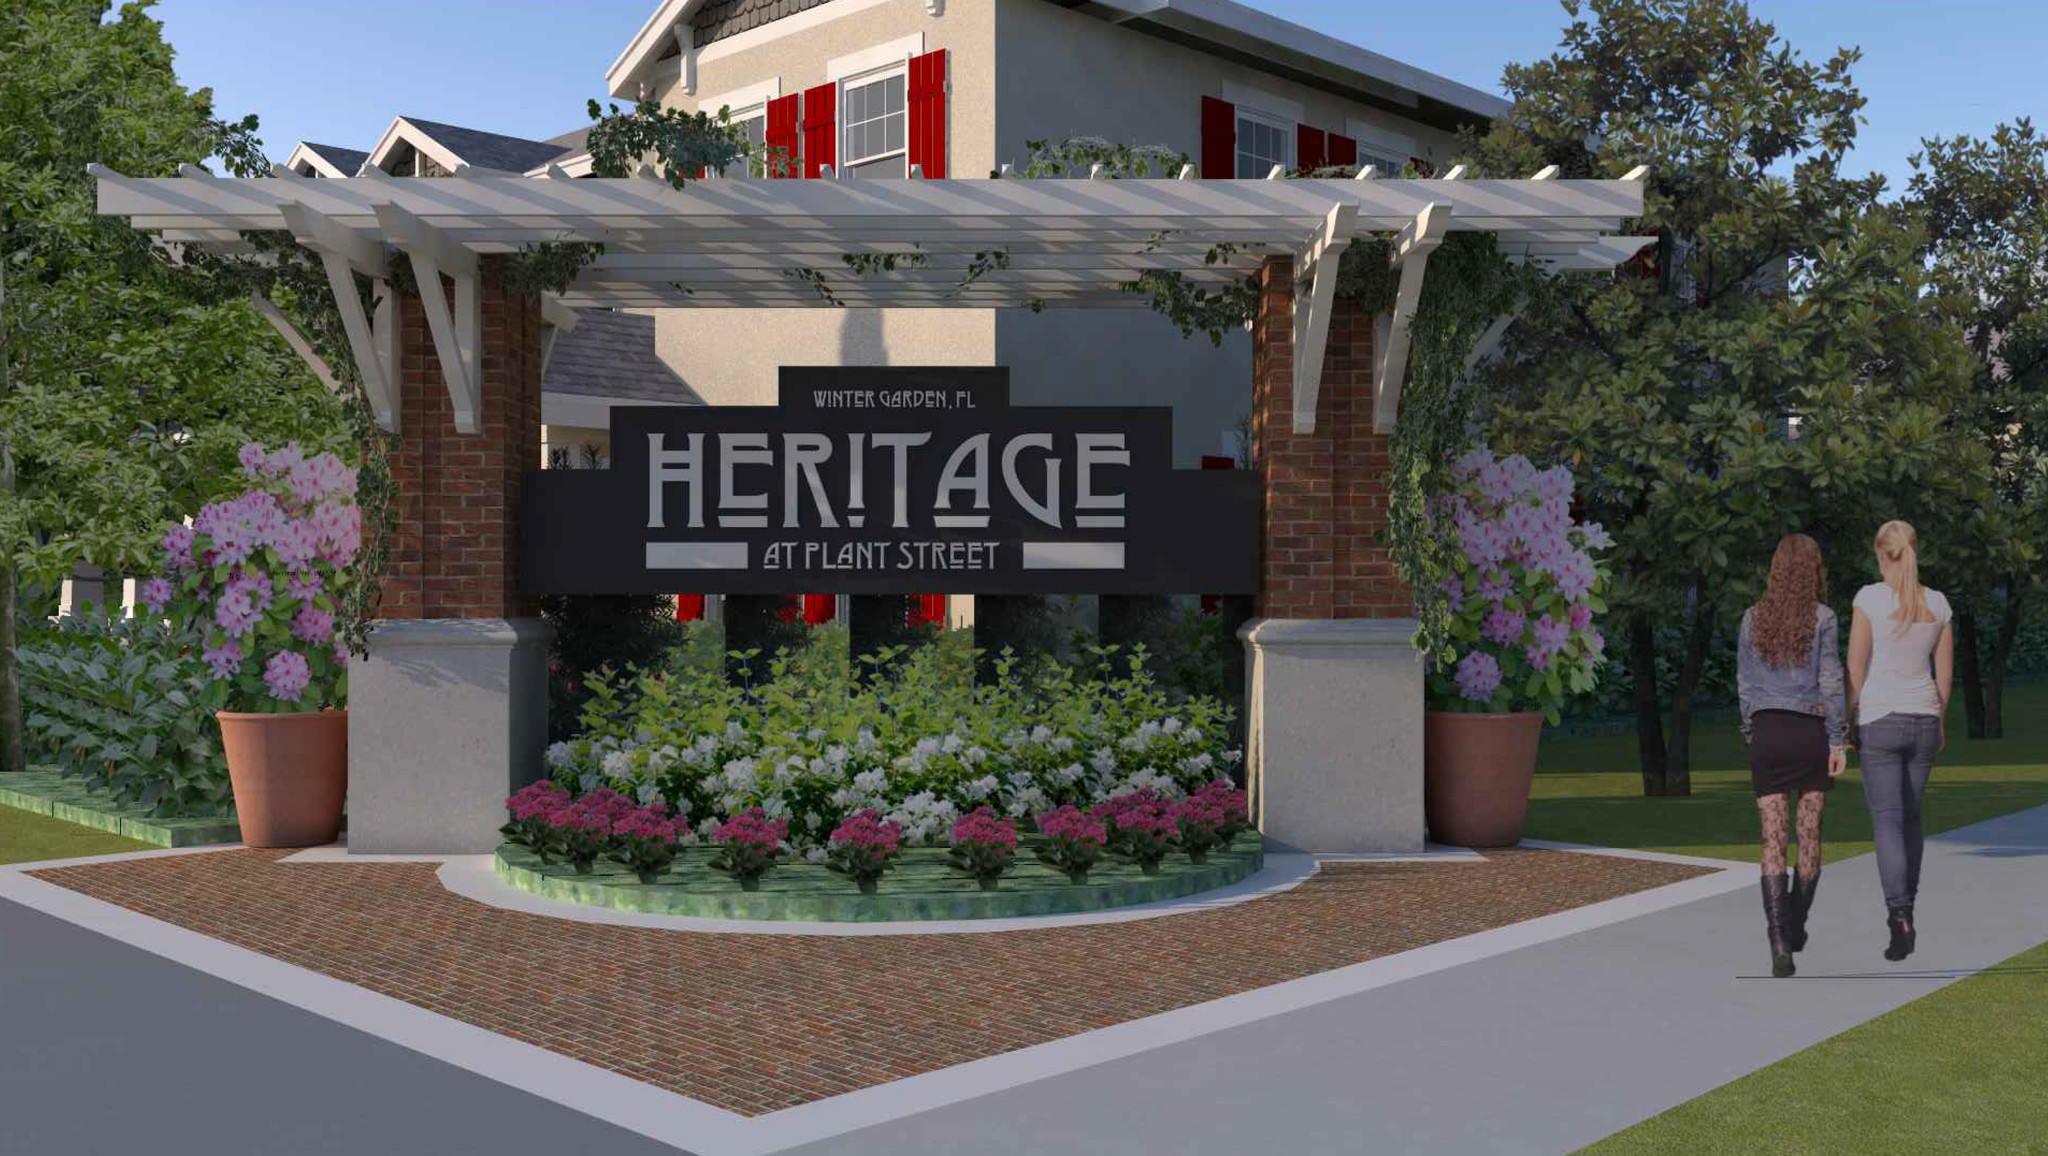 Homes townhomes slated for winter garden historic area - Townhomes for sale in winter garden fl ...